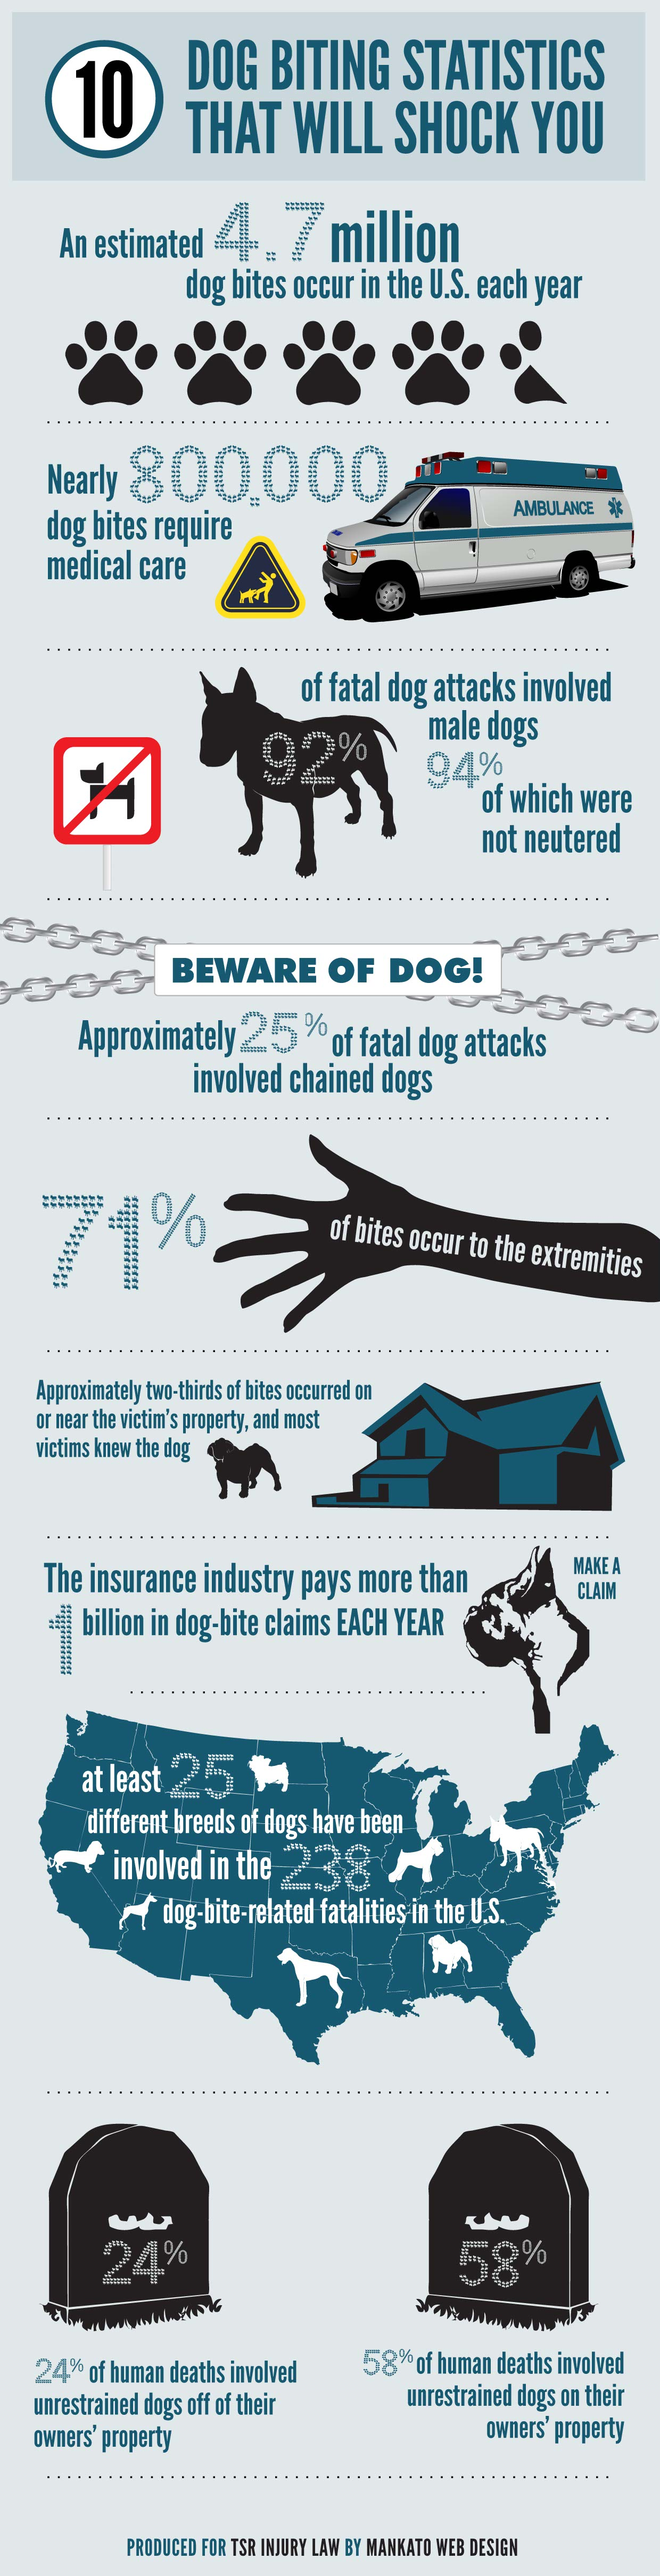 10-Dog-Biting-Statistics-That-Will-Shock-You-Infographic